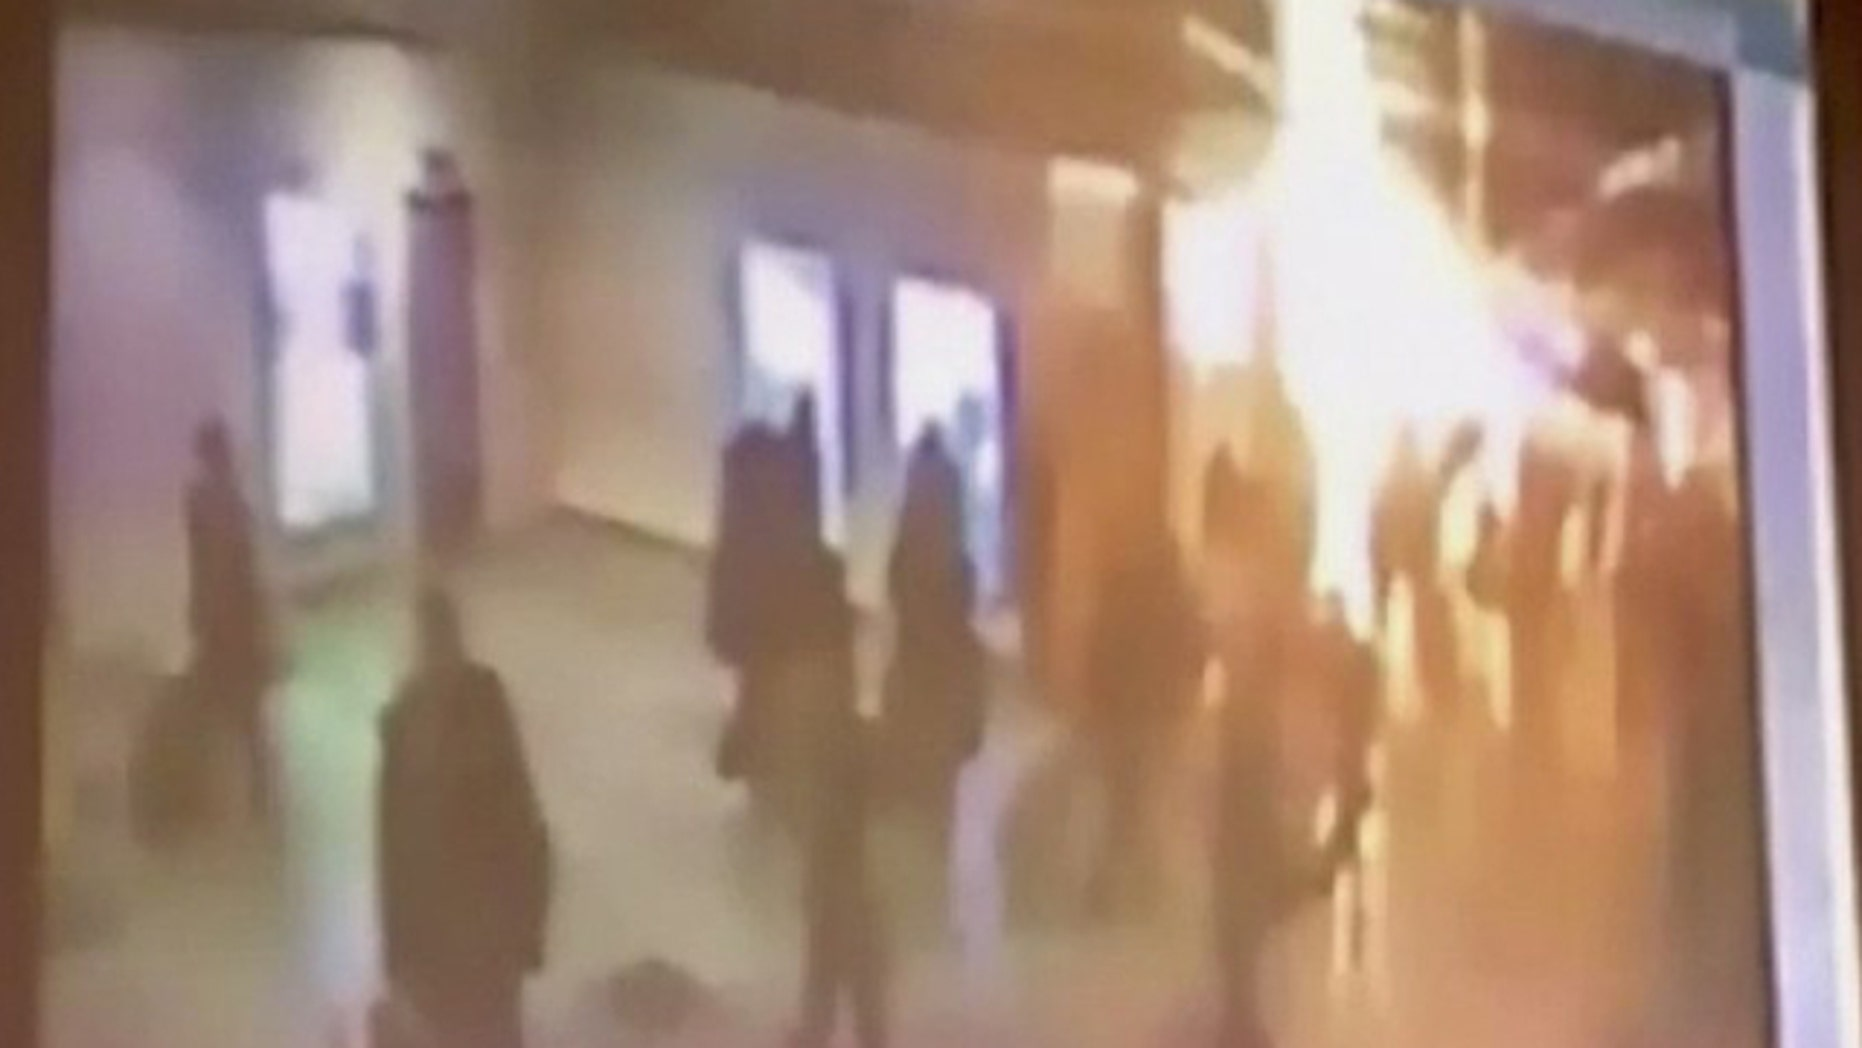 Jan. 24: A still image taken from a CCTV footage shows an explosion at Moscow's Domodedovo airport.